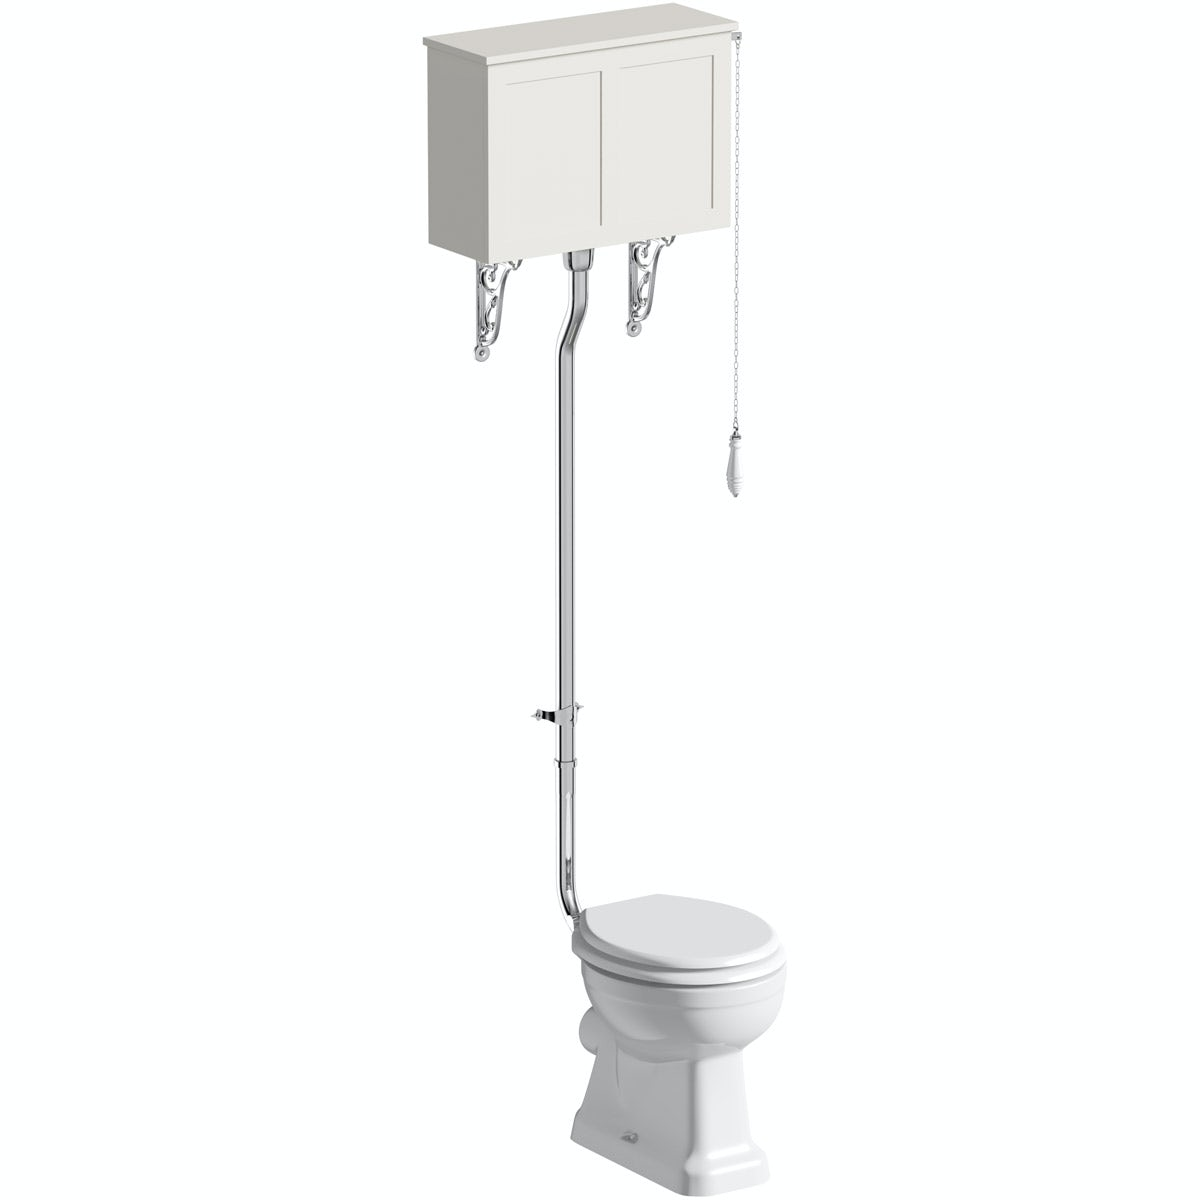 The Bath Co. Camberley high level toilet with satin ivory toilet box and white seat with pan connector